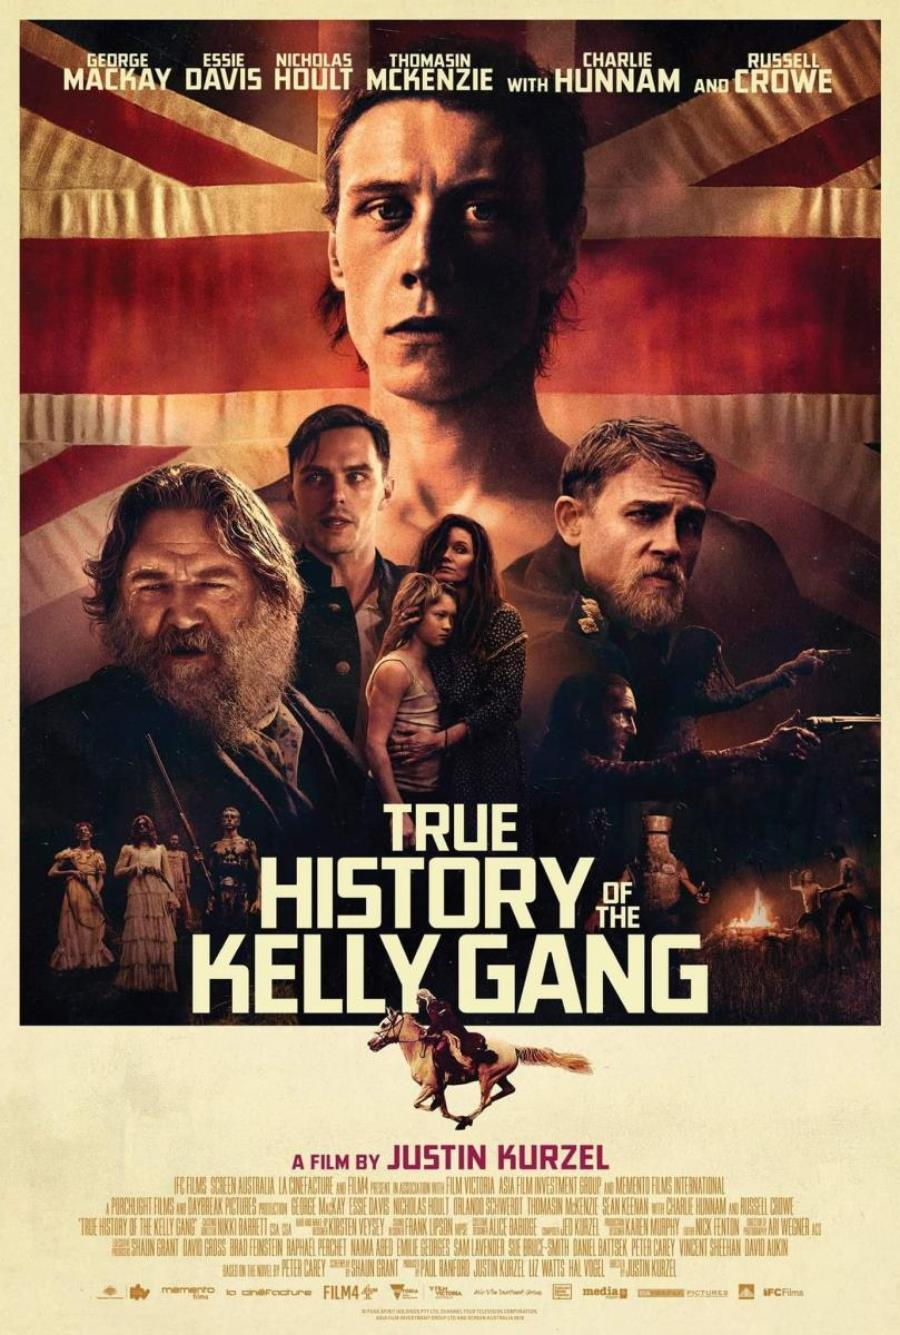 THE KELLY GANG(1). THE KELLY GANG